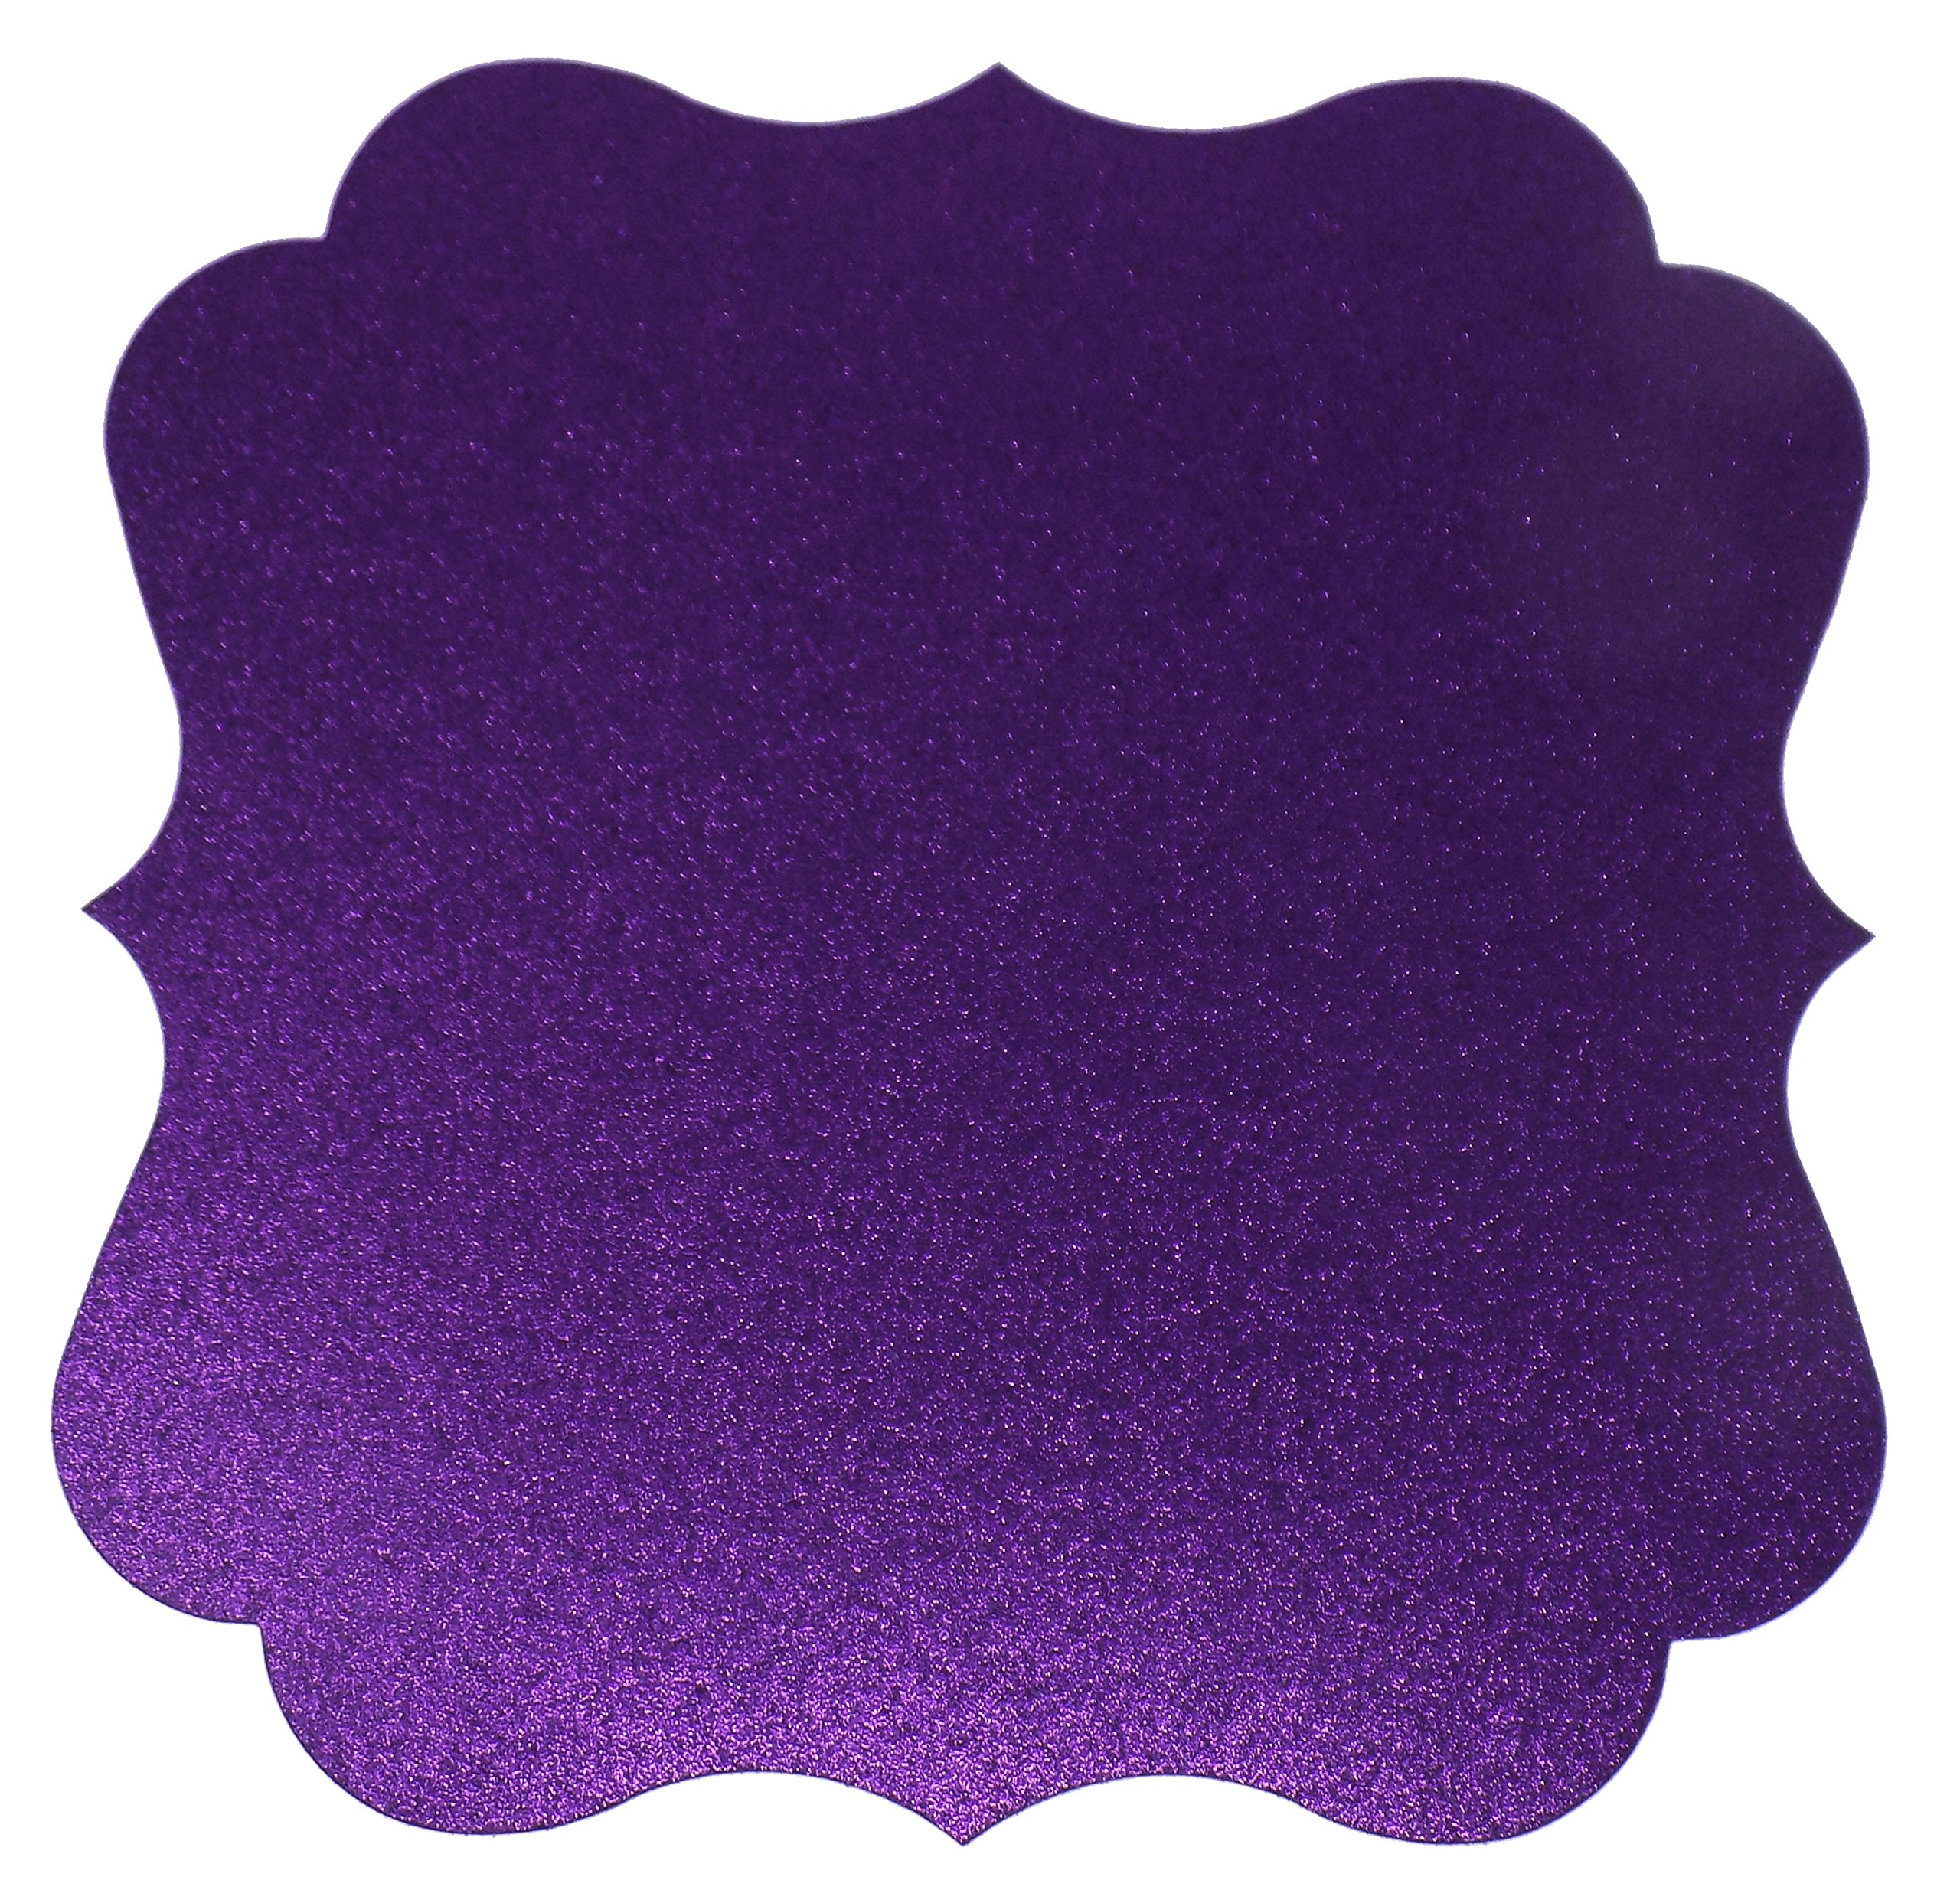 PaperGala Glitter Chargers Paper Board Placemats for Plates Weddings 10 Pack (Purple)